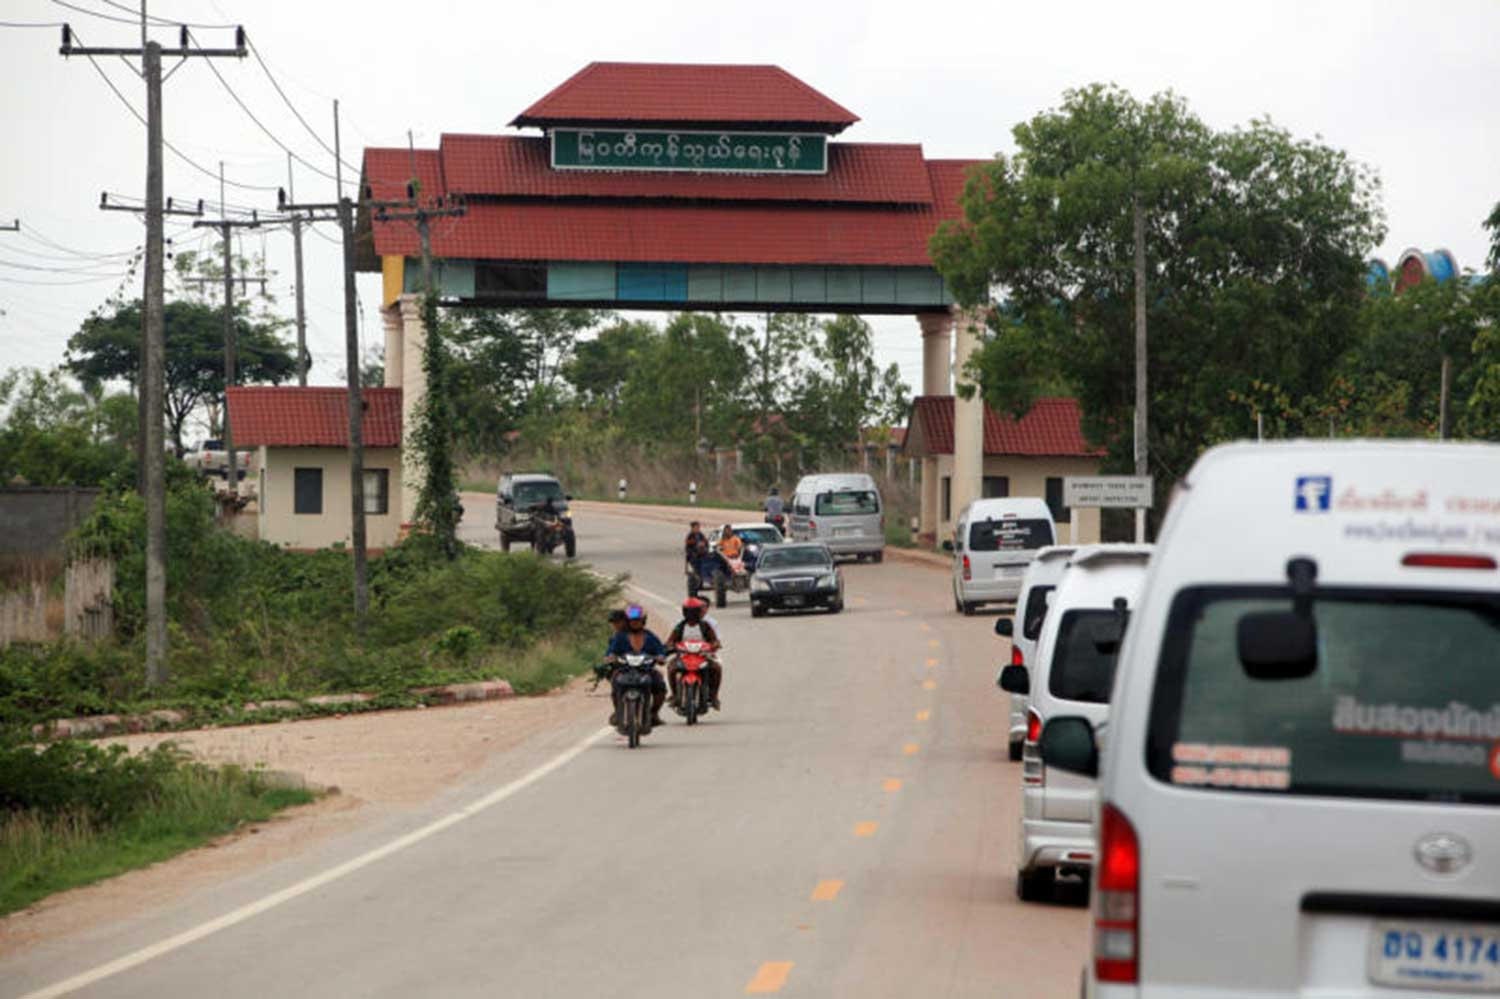 The Mae Sot-Myawaddy checkpoint handled about 70 billion baht a year in cross border trade this year, and the figure is rising. (File photo)